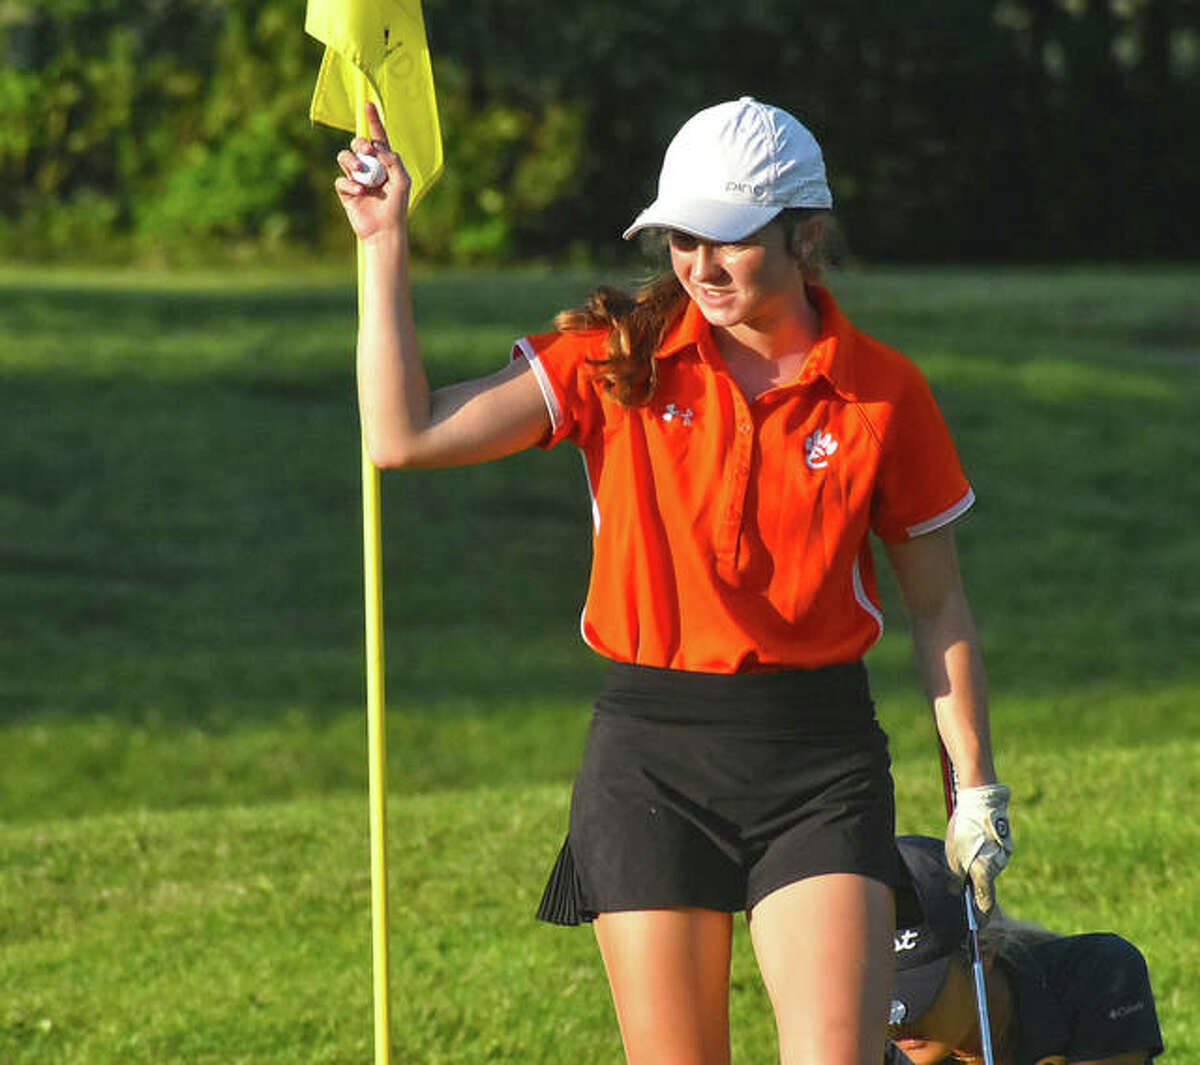 Edwardsville's Lucy Sheeley smiles after sinking a putt on Hole No. 7 at Woodlands Golf Club on Saturday during the Alton Kick-Off Scramble/Shamble.